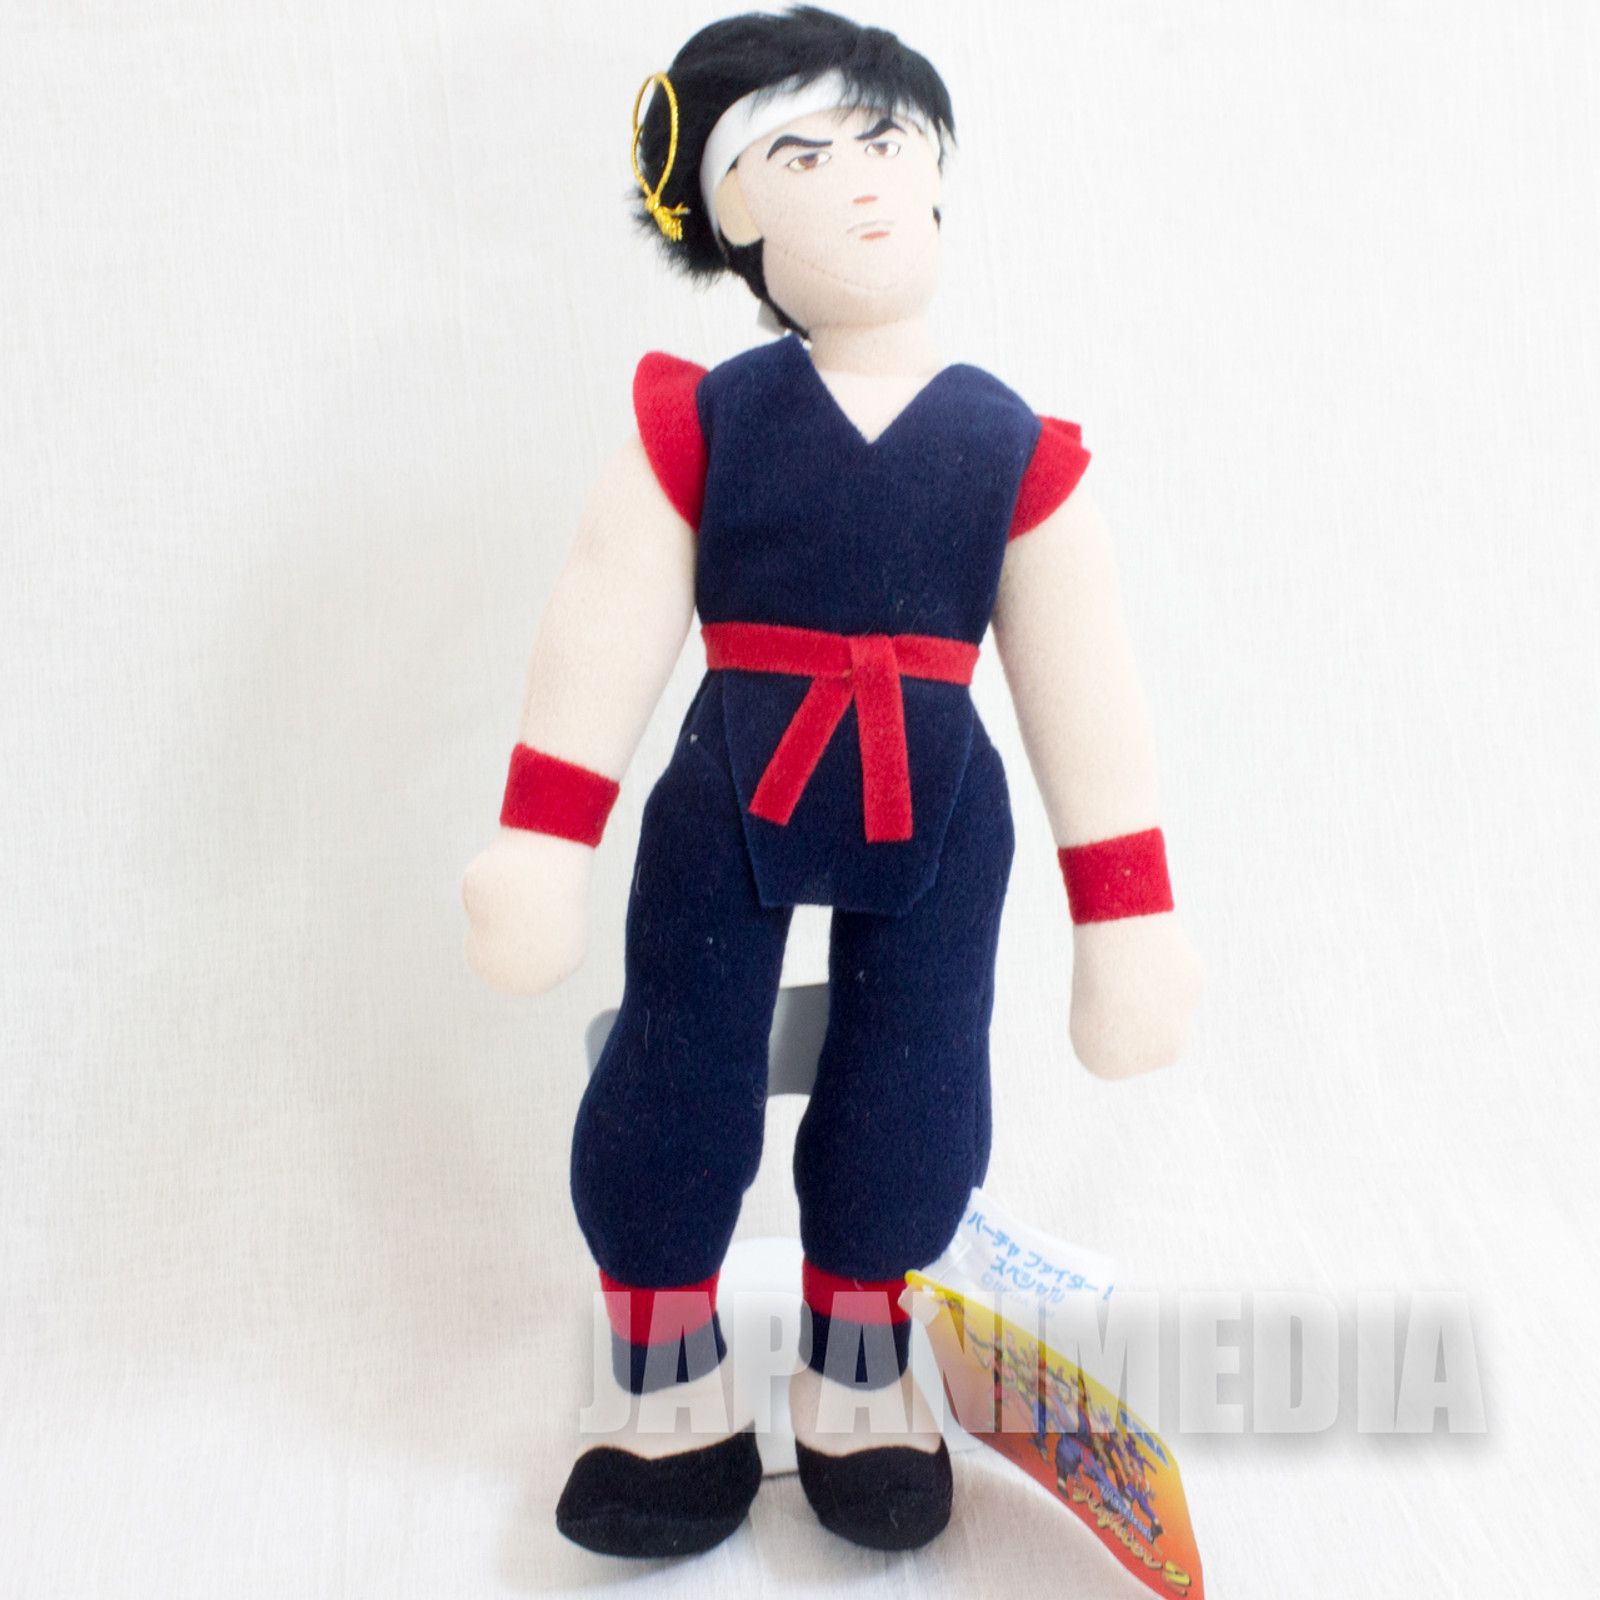 "Virtua Fighter 2 Akira Yuki 10"" Plush Doll SEGA 1994 JAPAN GAME FIGURE"